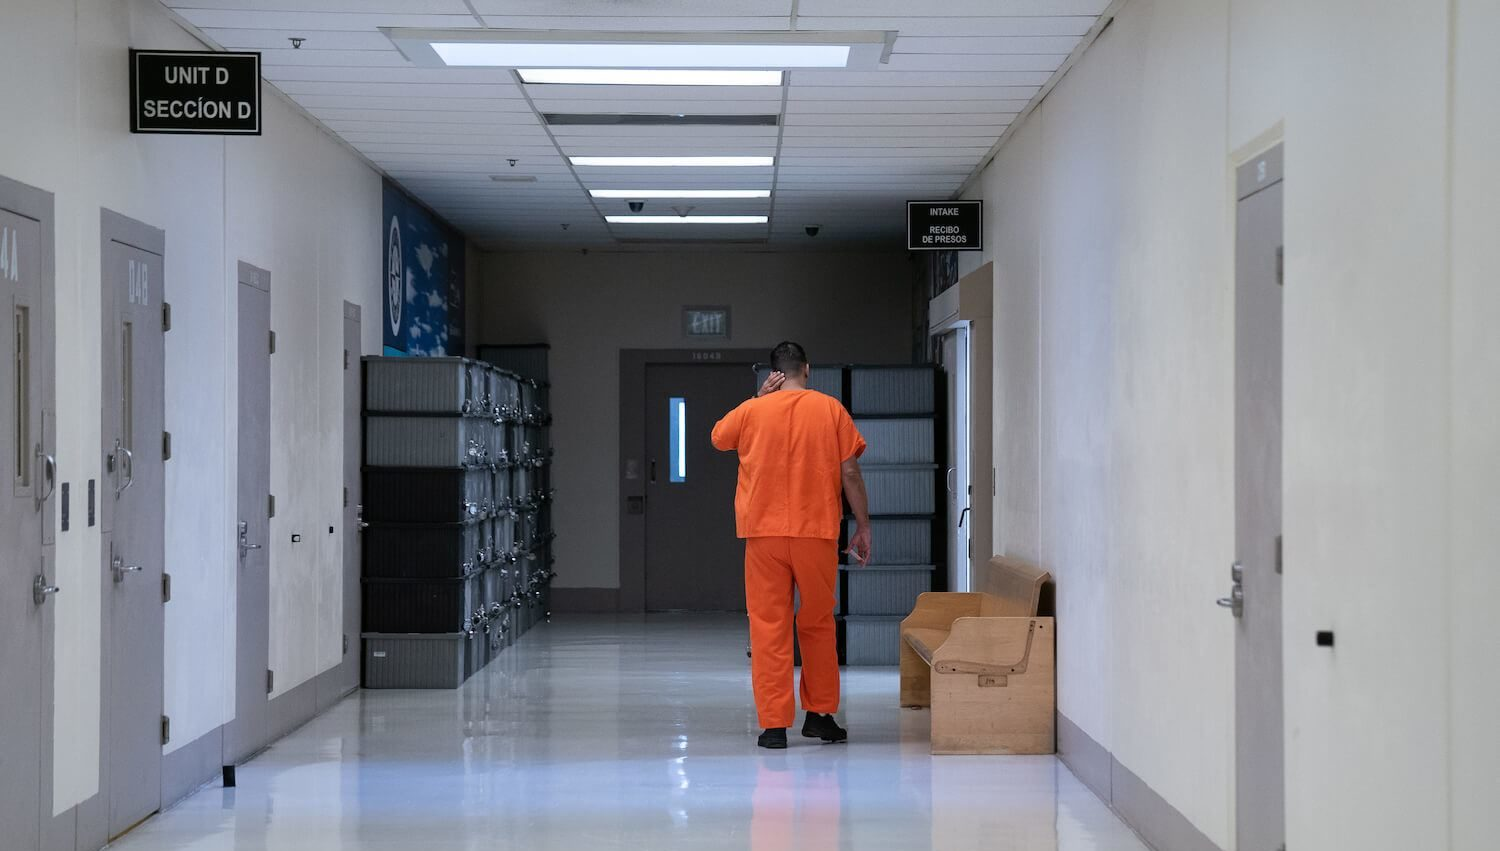 A detainee walks through the Northwest ICE Processing Center (NWIPC), formerly known as the Northwest Detention Center, during a press tour on Monday, Dec. 16, 2019. August 2021